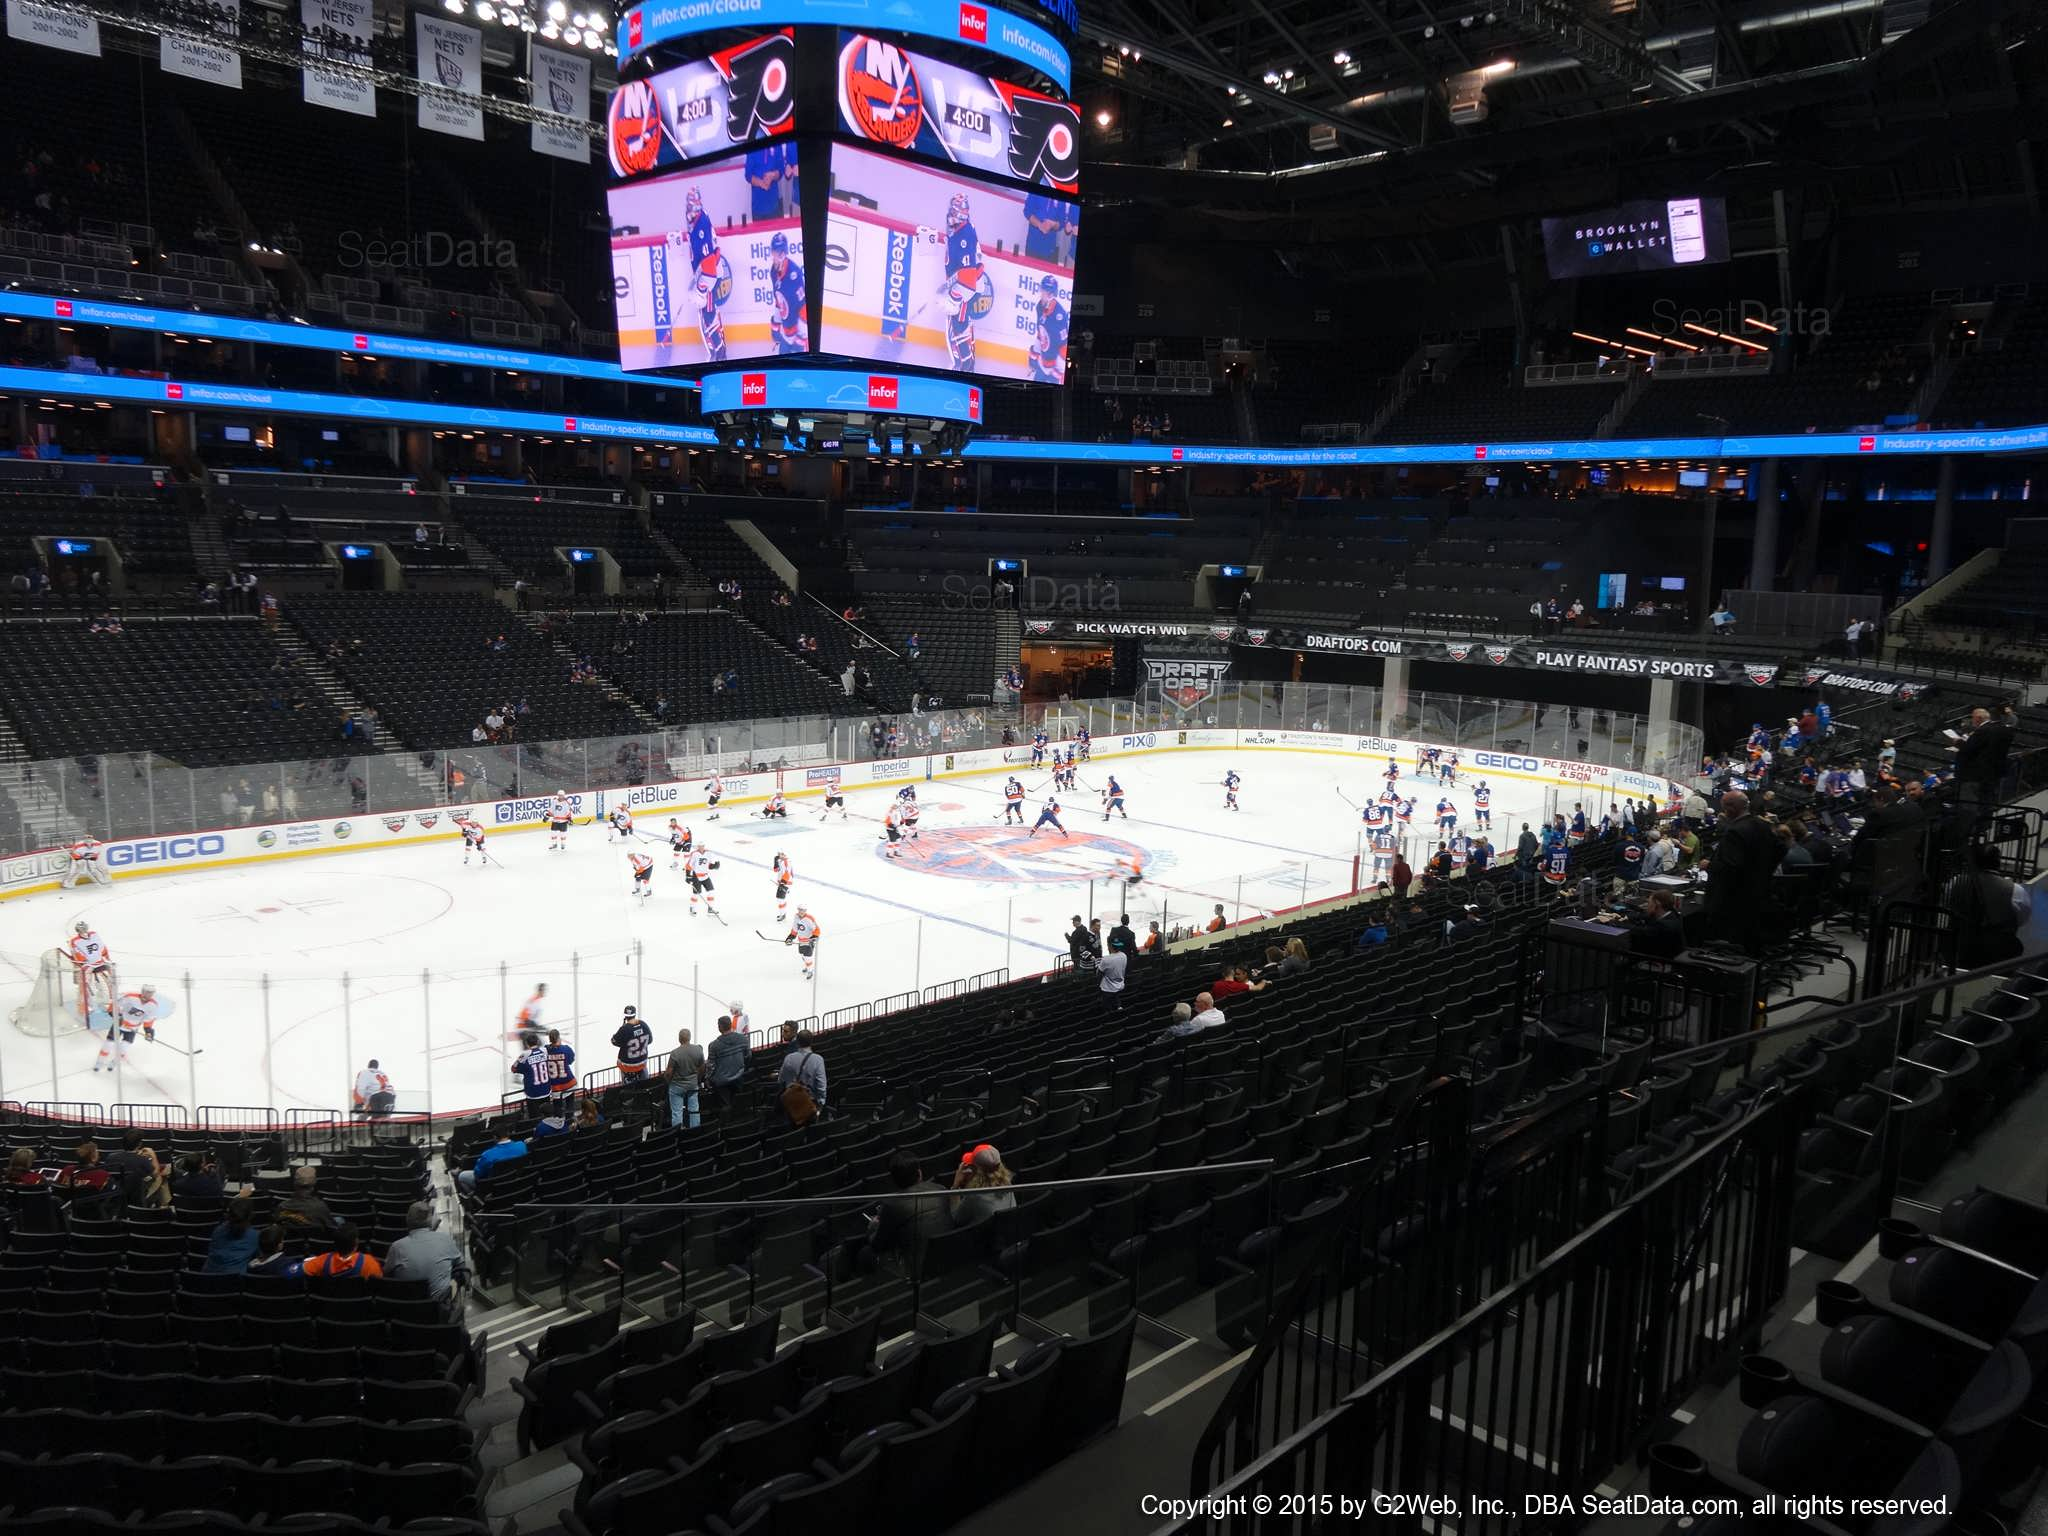 Seat View from Section 111 at the Barclays Center, home of the New York Islanders